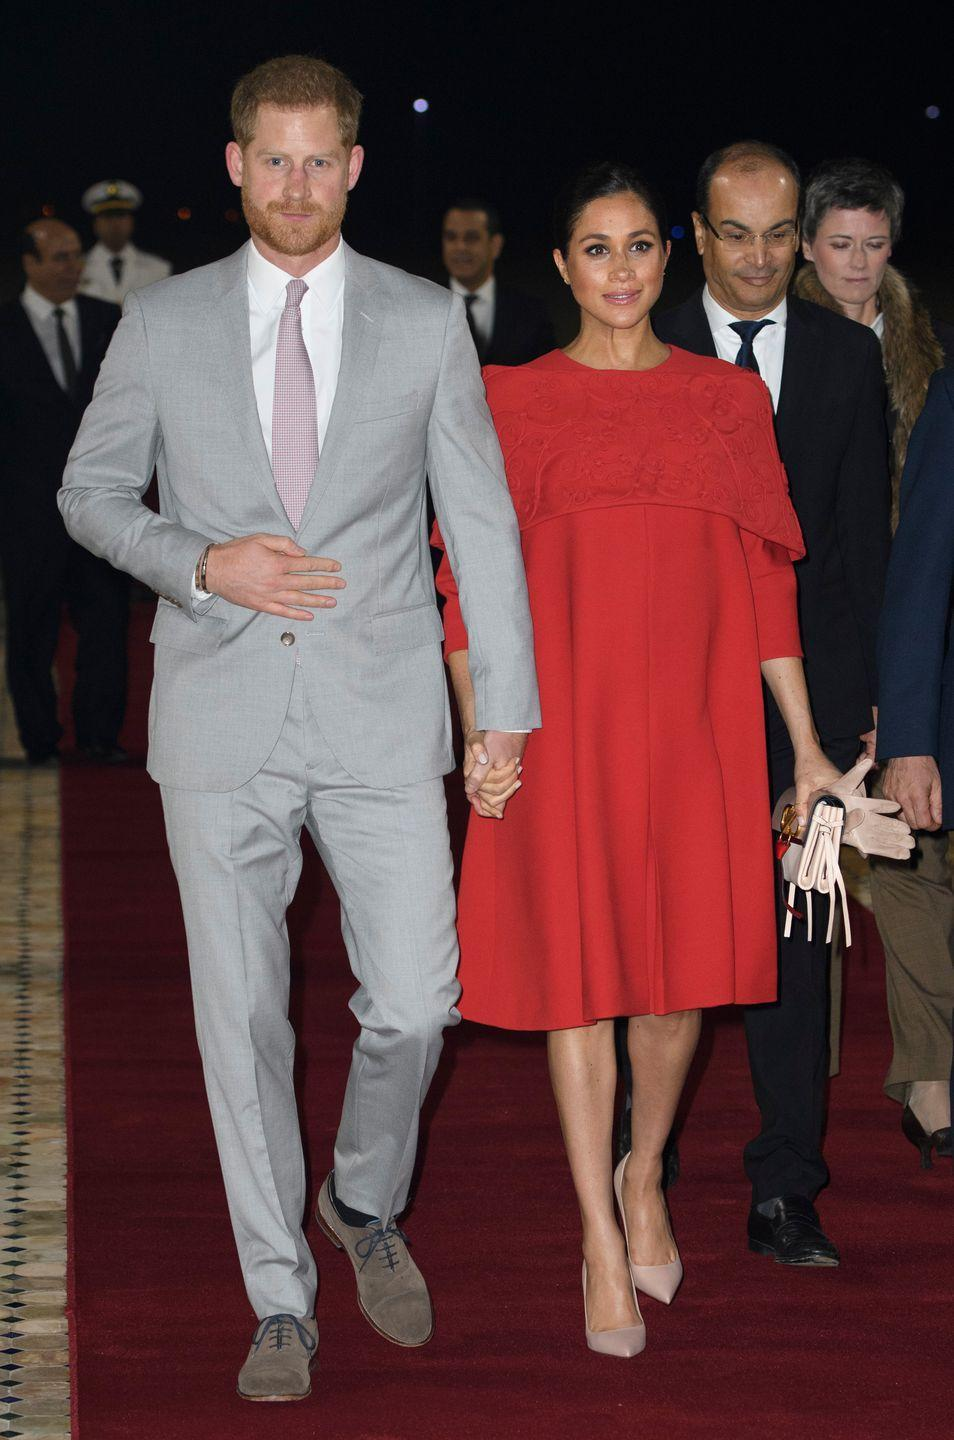 "<p>The Duchess of Sussex wore a red Valentino cape dress and nude pumps as she arrived with Prince Harry in Casablanca, Morocco to start off their royal tour. Meghan carried a pair of beige gloves and a <a href=""https://www.farfetch.com/shopping/women/valentino/items.aspx?"" rel=""nofollow noopener"" target=""_blank"" data-ylk=""slk:Valentino Garavani"" class=""link rapid-noclick-resp"">Valentino Garavani</a> clutch. </p><p><a class=""link rapid-noclick-resp"" href=""https://www.neimanmarcus.com/p/valentino-garavani-vee-ring-medium-colorblock-leather-shoulder-bag-prod218040102"" rel=""nofollow noopener"" target=""_blank"" data-ylk=""slk:Shop Similar"">Shop Similar</a> <em>Vee Ring Medium Shoulder Bag, Valentino Garavani, $3,295</em><em><br></em></p>"